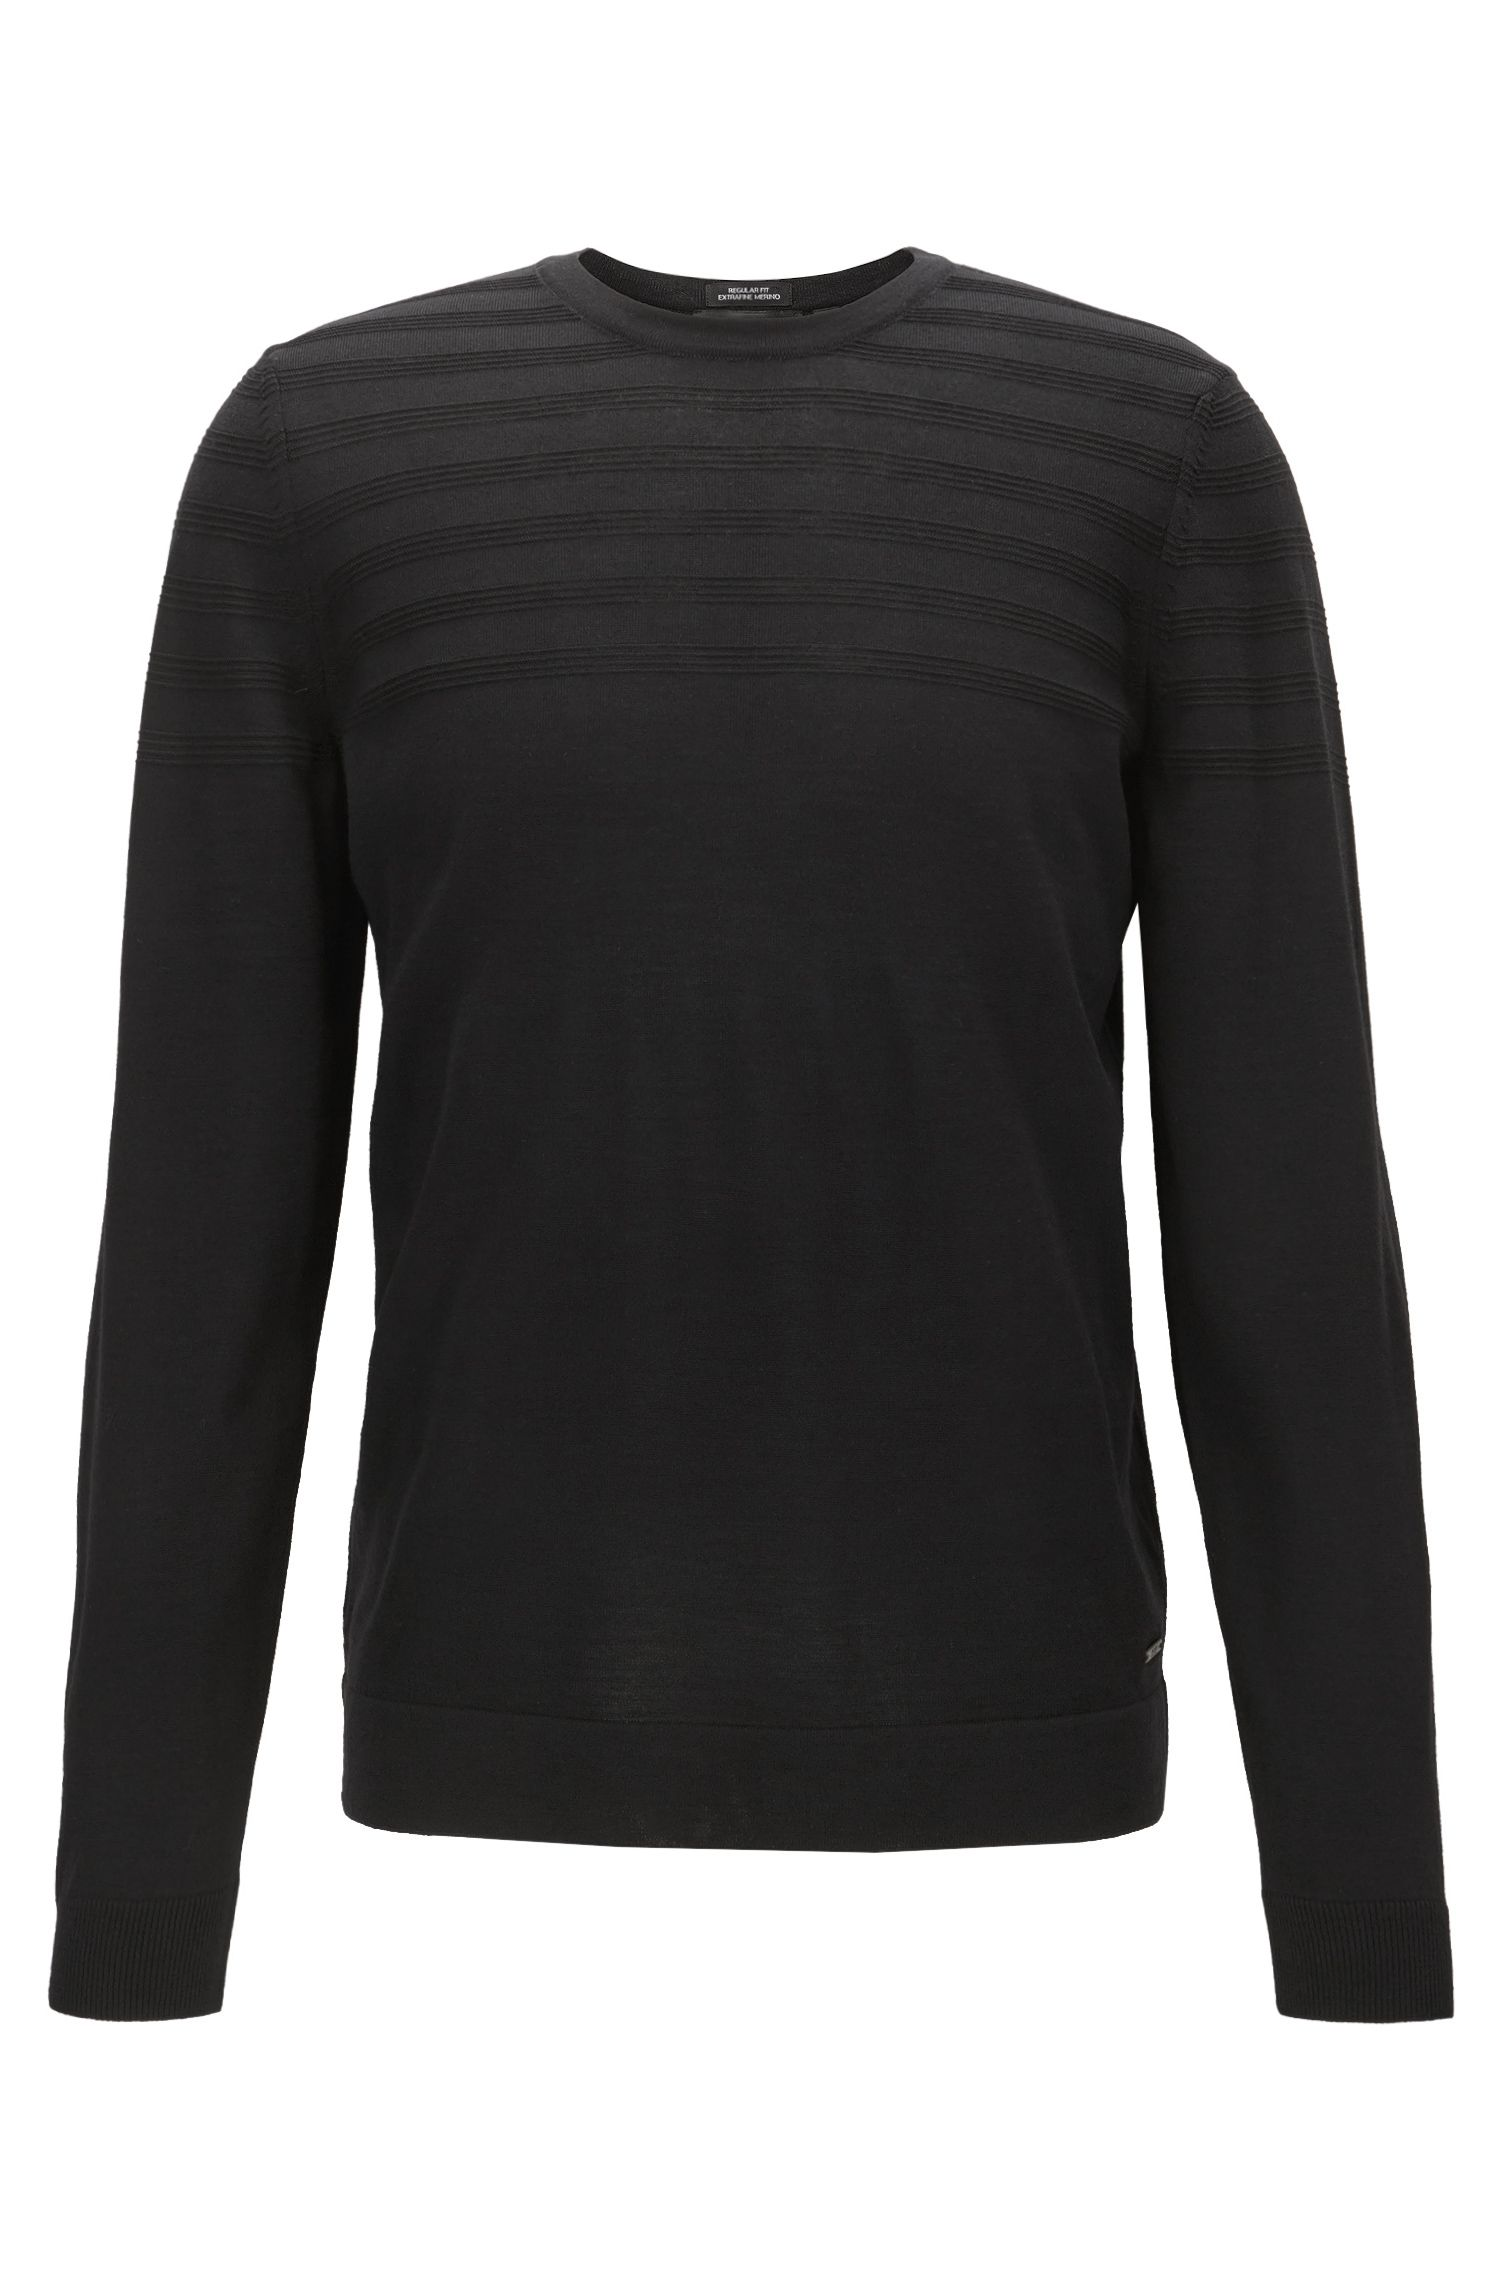 Tonal Striped Stretch Extra-Fine Merino Sweater | Poggino